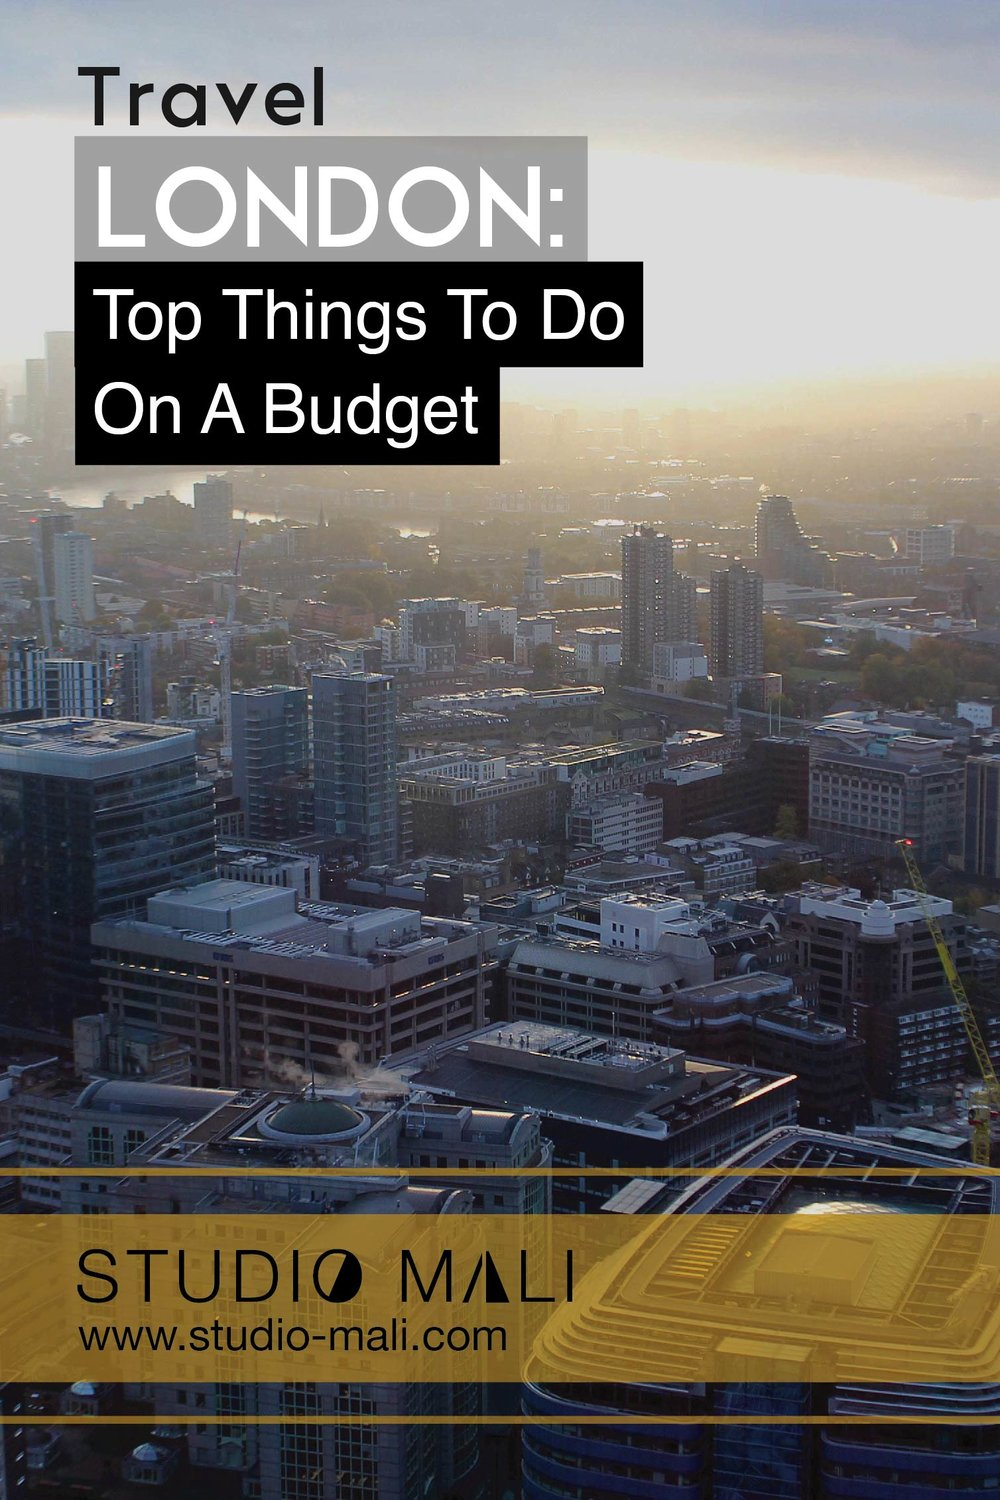 Top Things To Do In London On A Budget, by Studio Mali.jpg